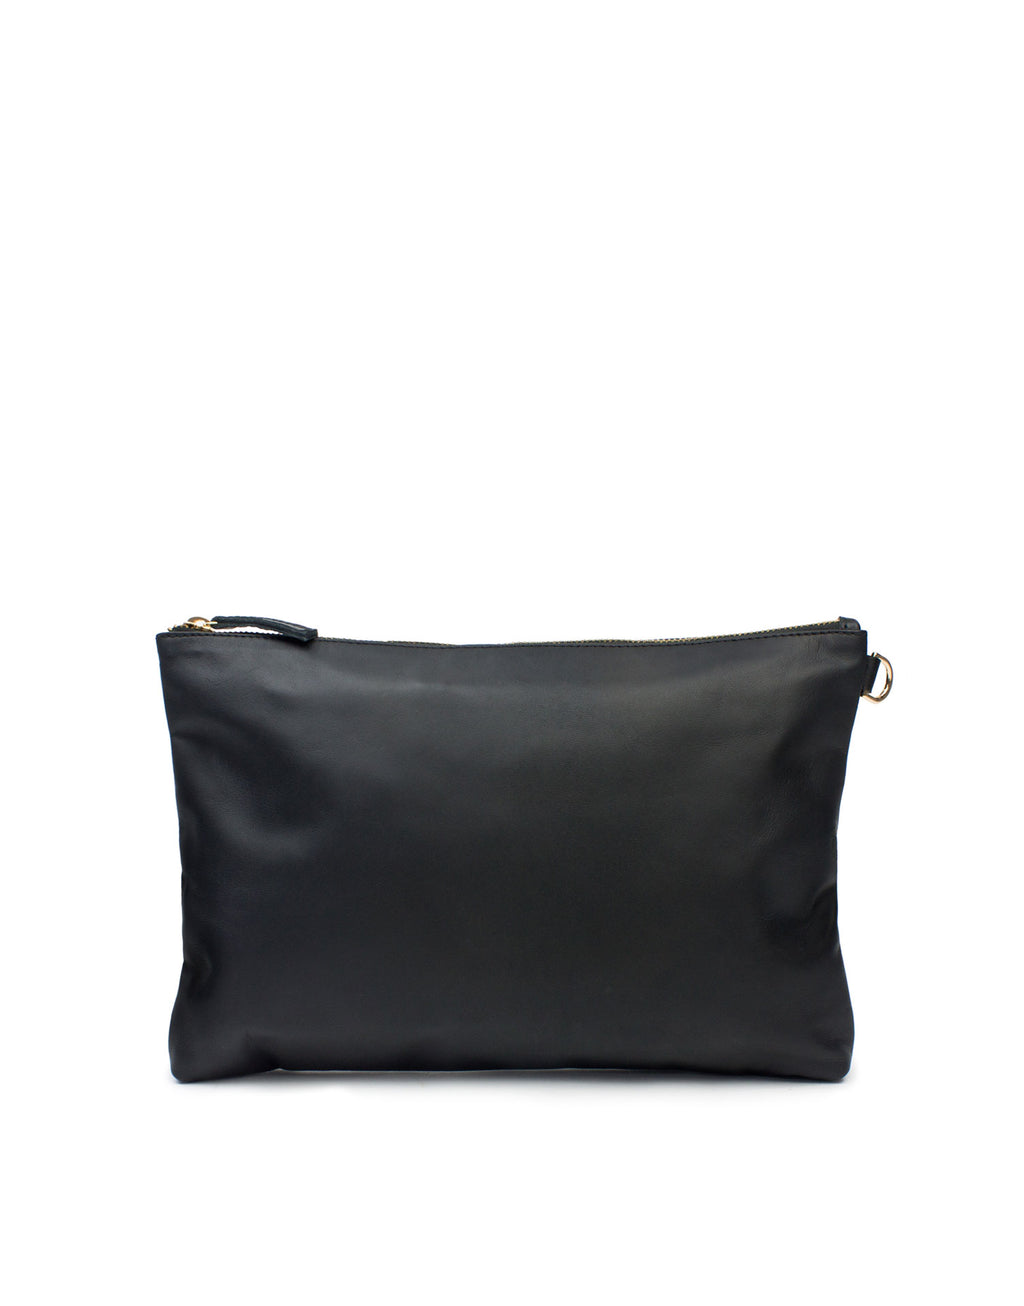 Medium designer leather bag by Georgina Goodman, this soft leather pouch bag has many uses, wear alone as a clutch or use to keep essential item safe in a larger bag by day. Designed with soul and Made in Love.